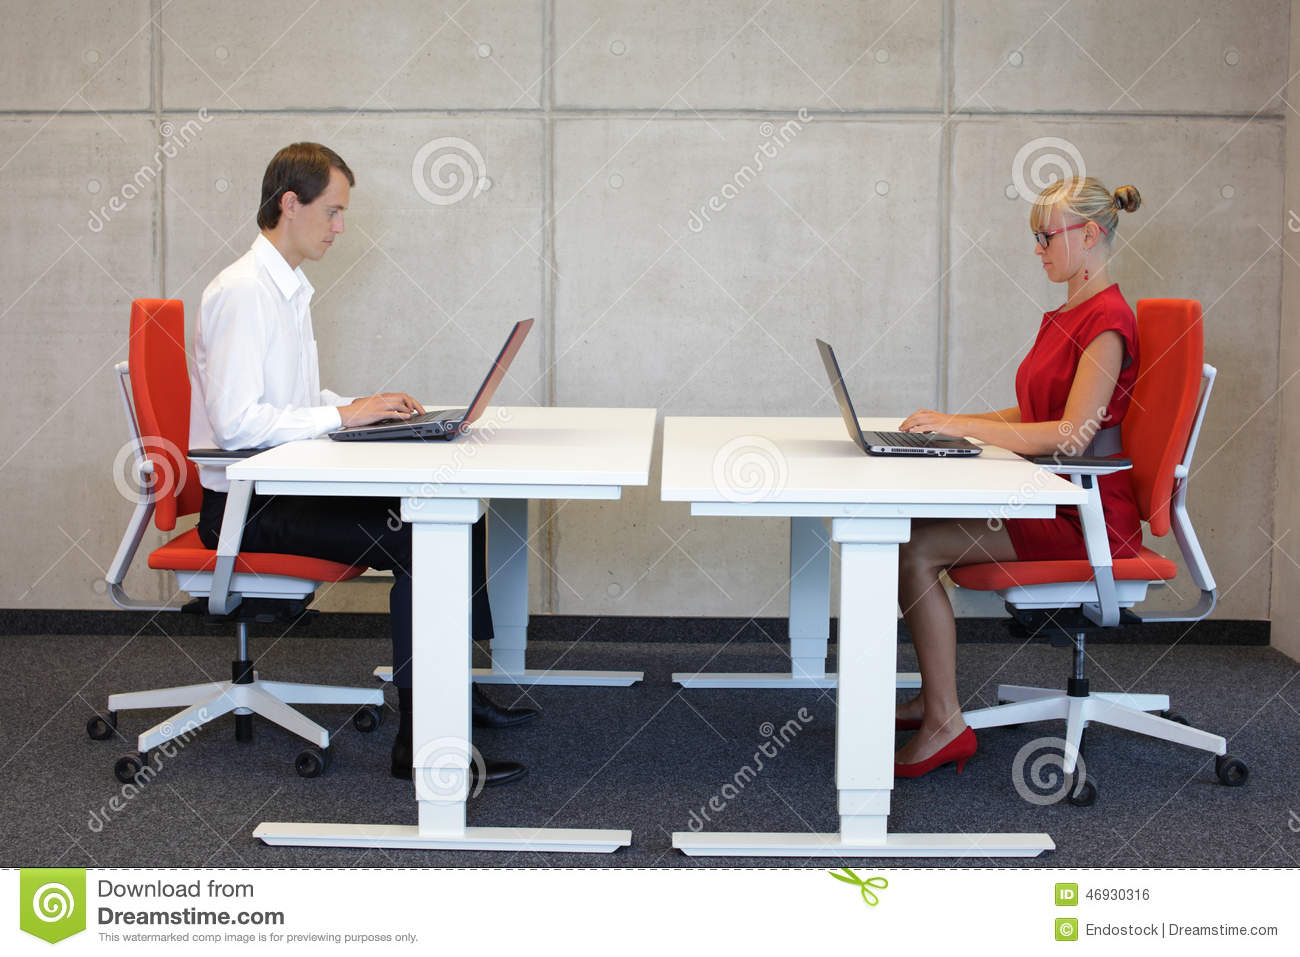 Business man and woman working in correct sitting posture with laptops sitting on chairs